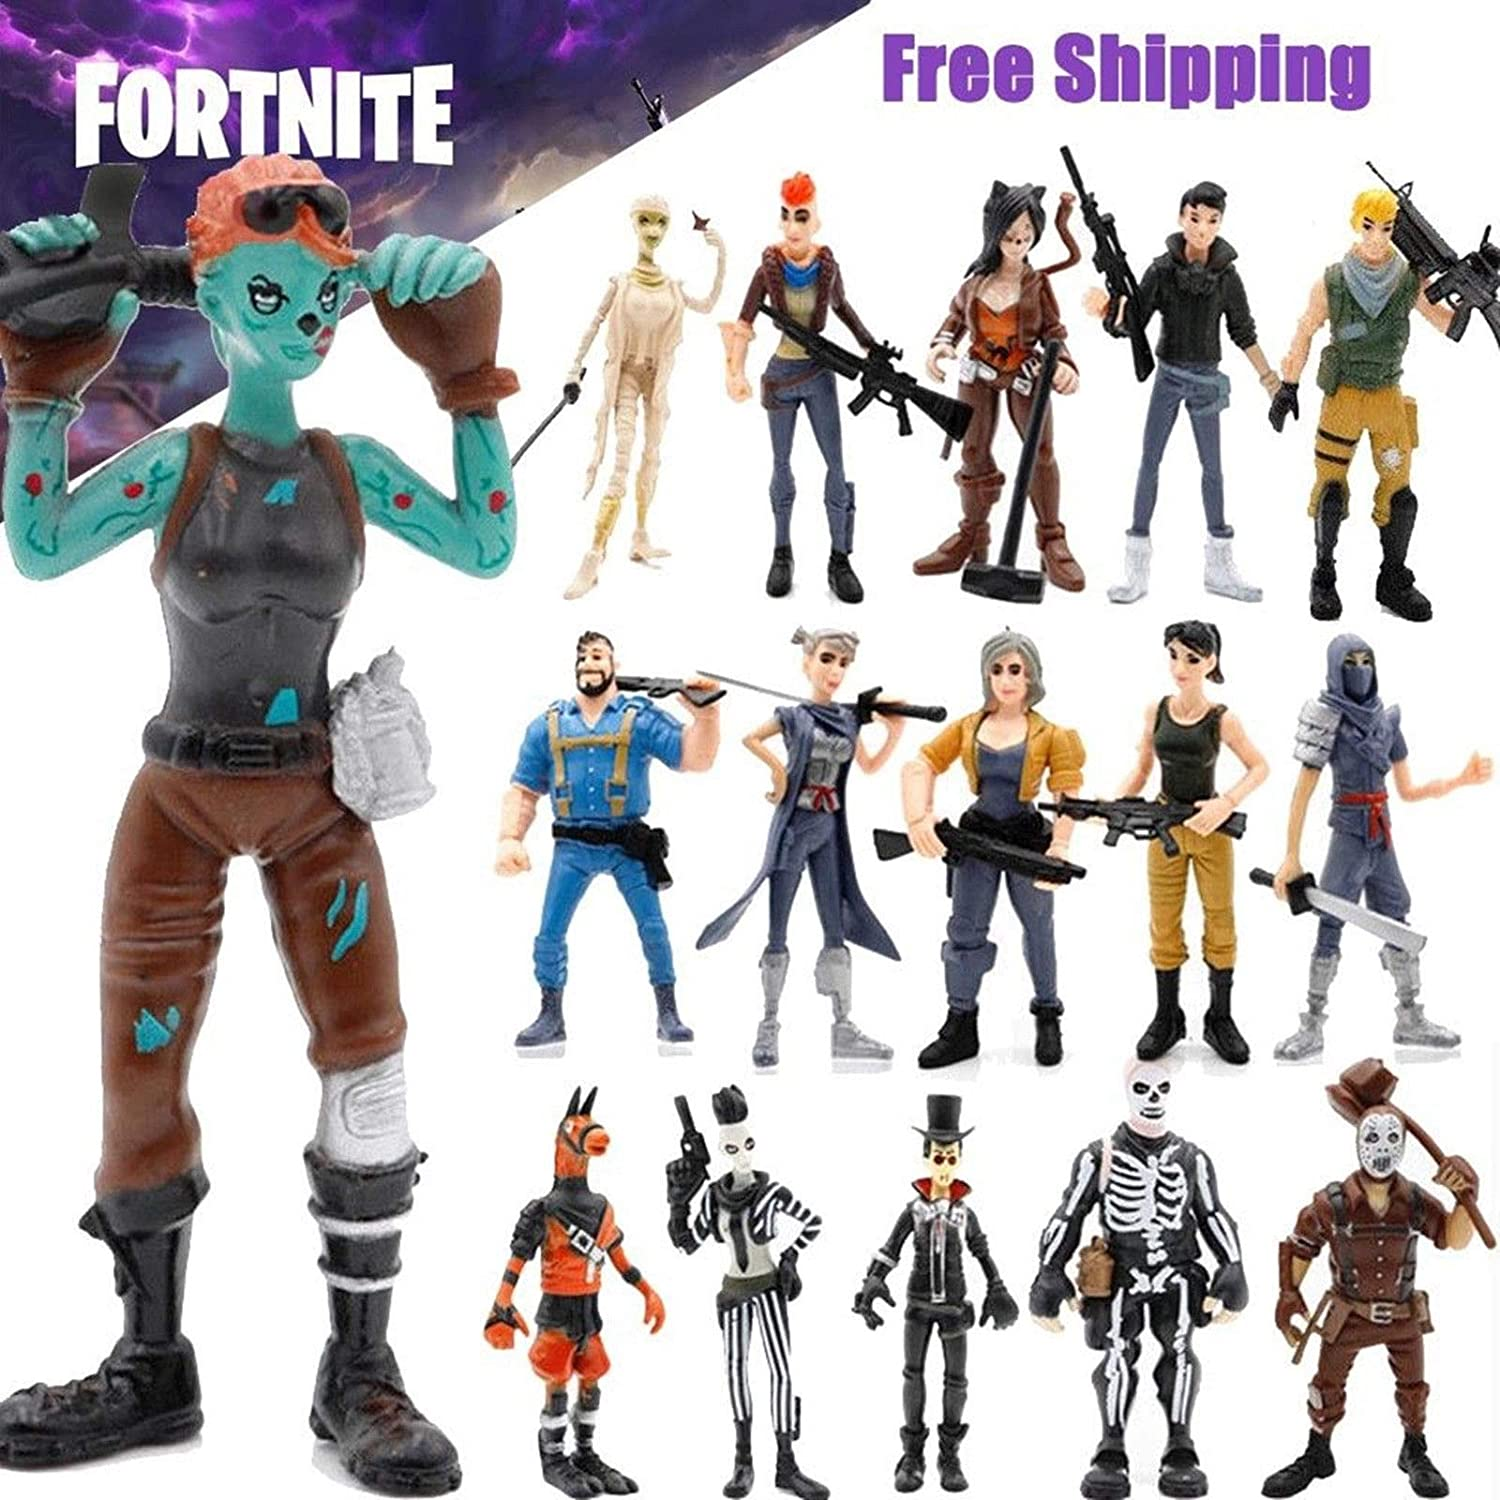 Amazon.com: unbrand 16 Pcs Fortnite Action Figures Skull ...